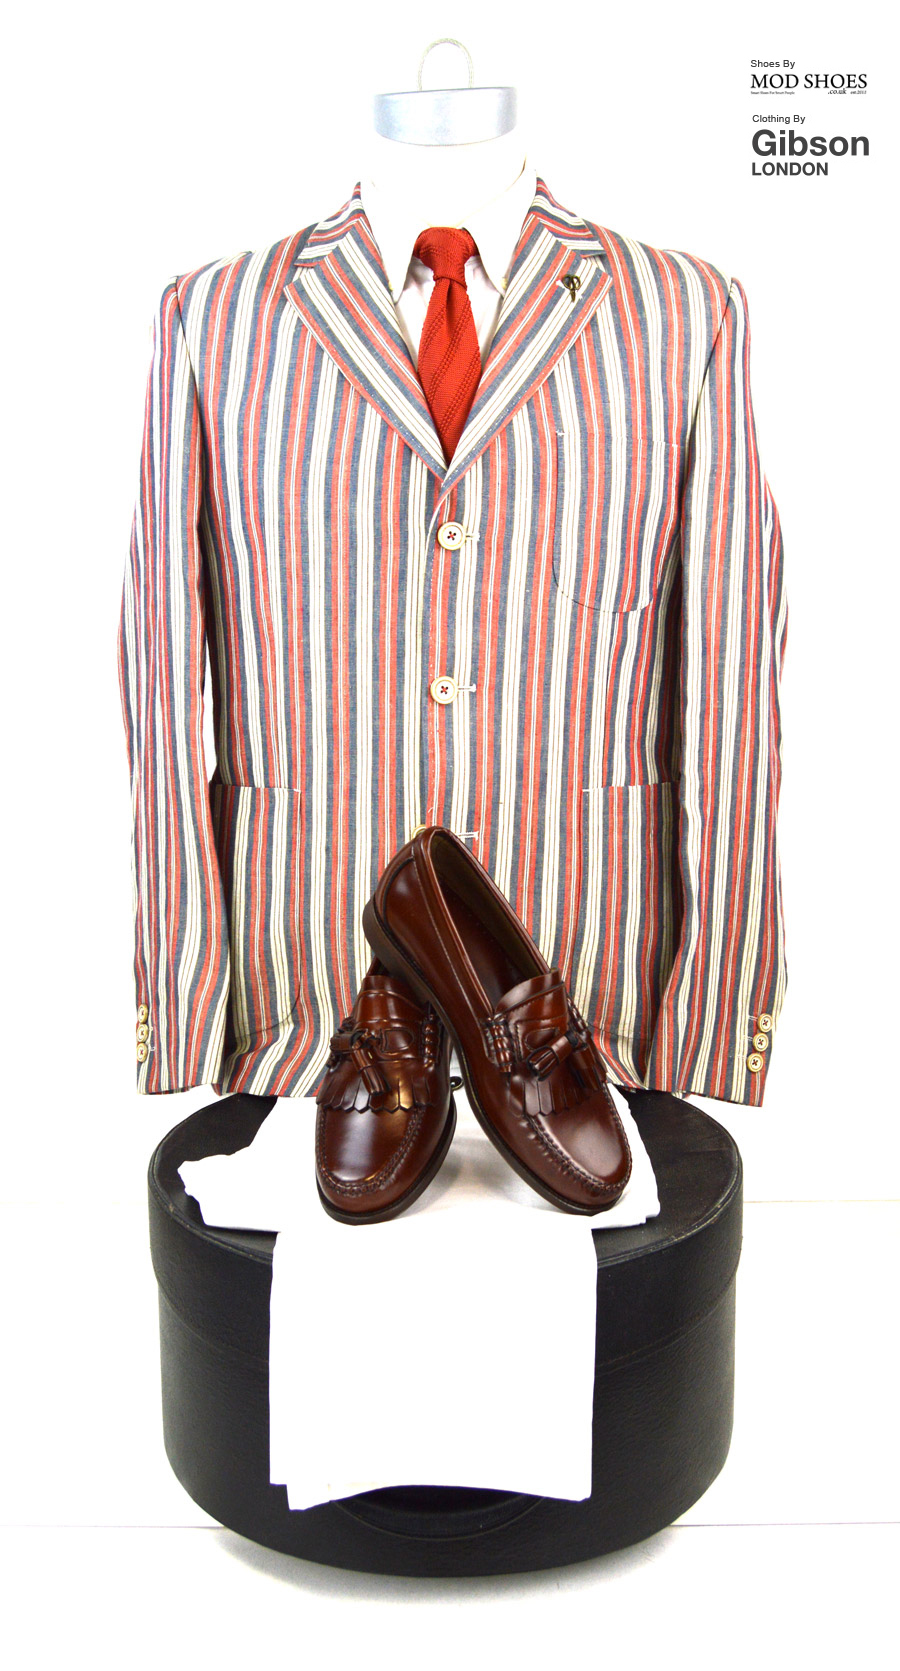 modshoes-chestnut-dukes-with-gibson-clothing-boating-blazer